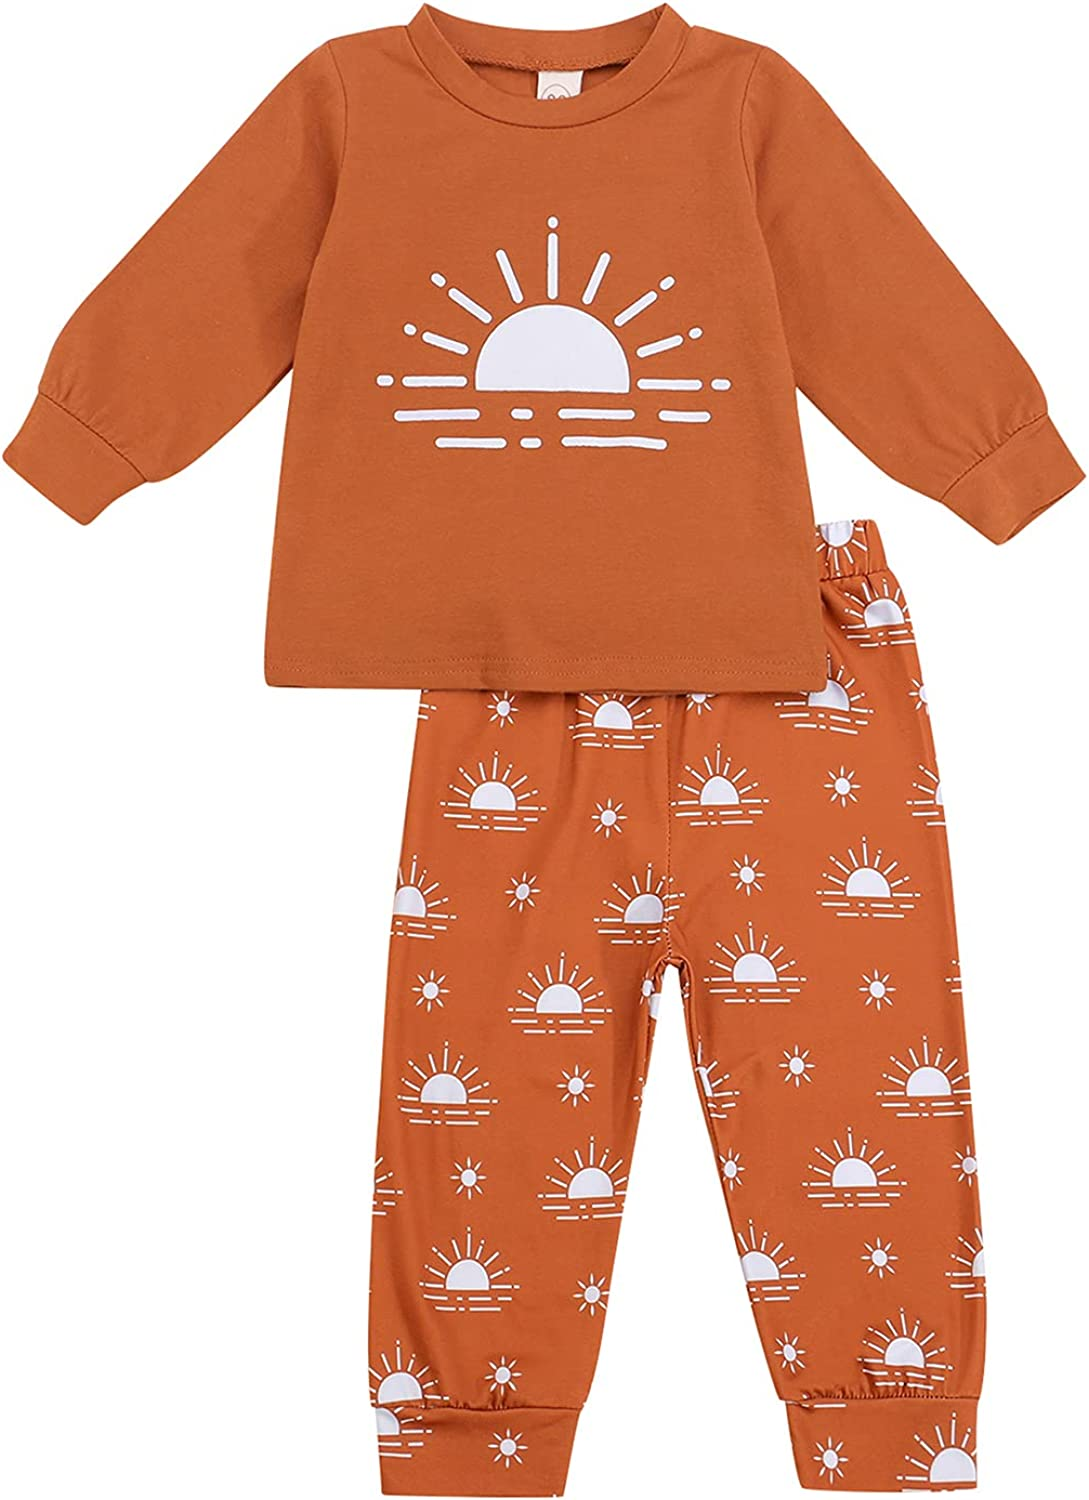 Baby Boy Fall Clothes Cute Sun Print Long Sleeve Pullover Sweatshirt Top and Pants Set 2 Piece Newborn Auntie Outfits